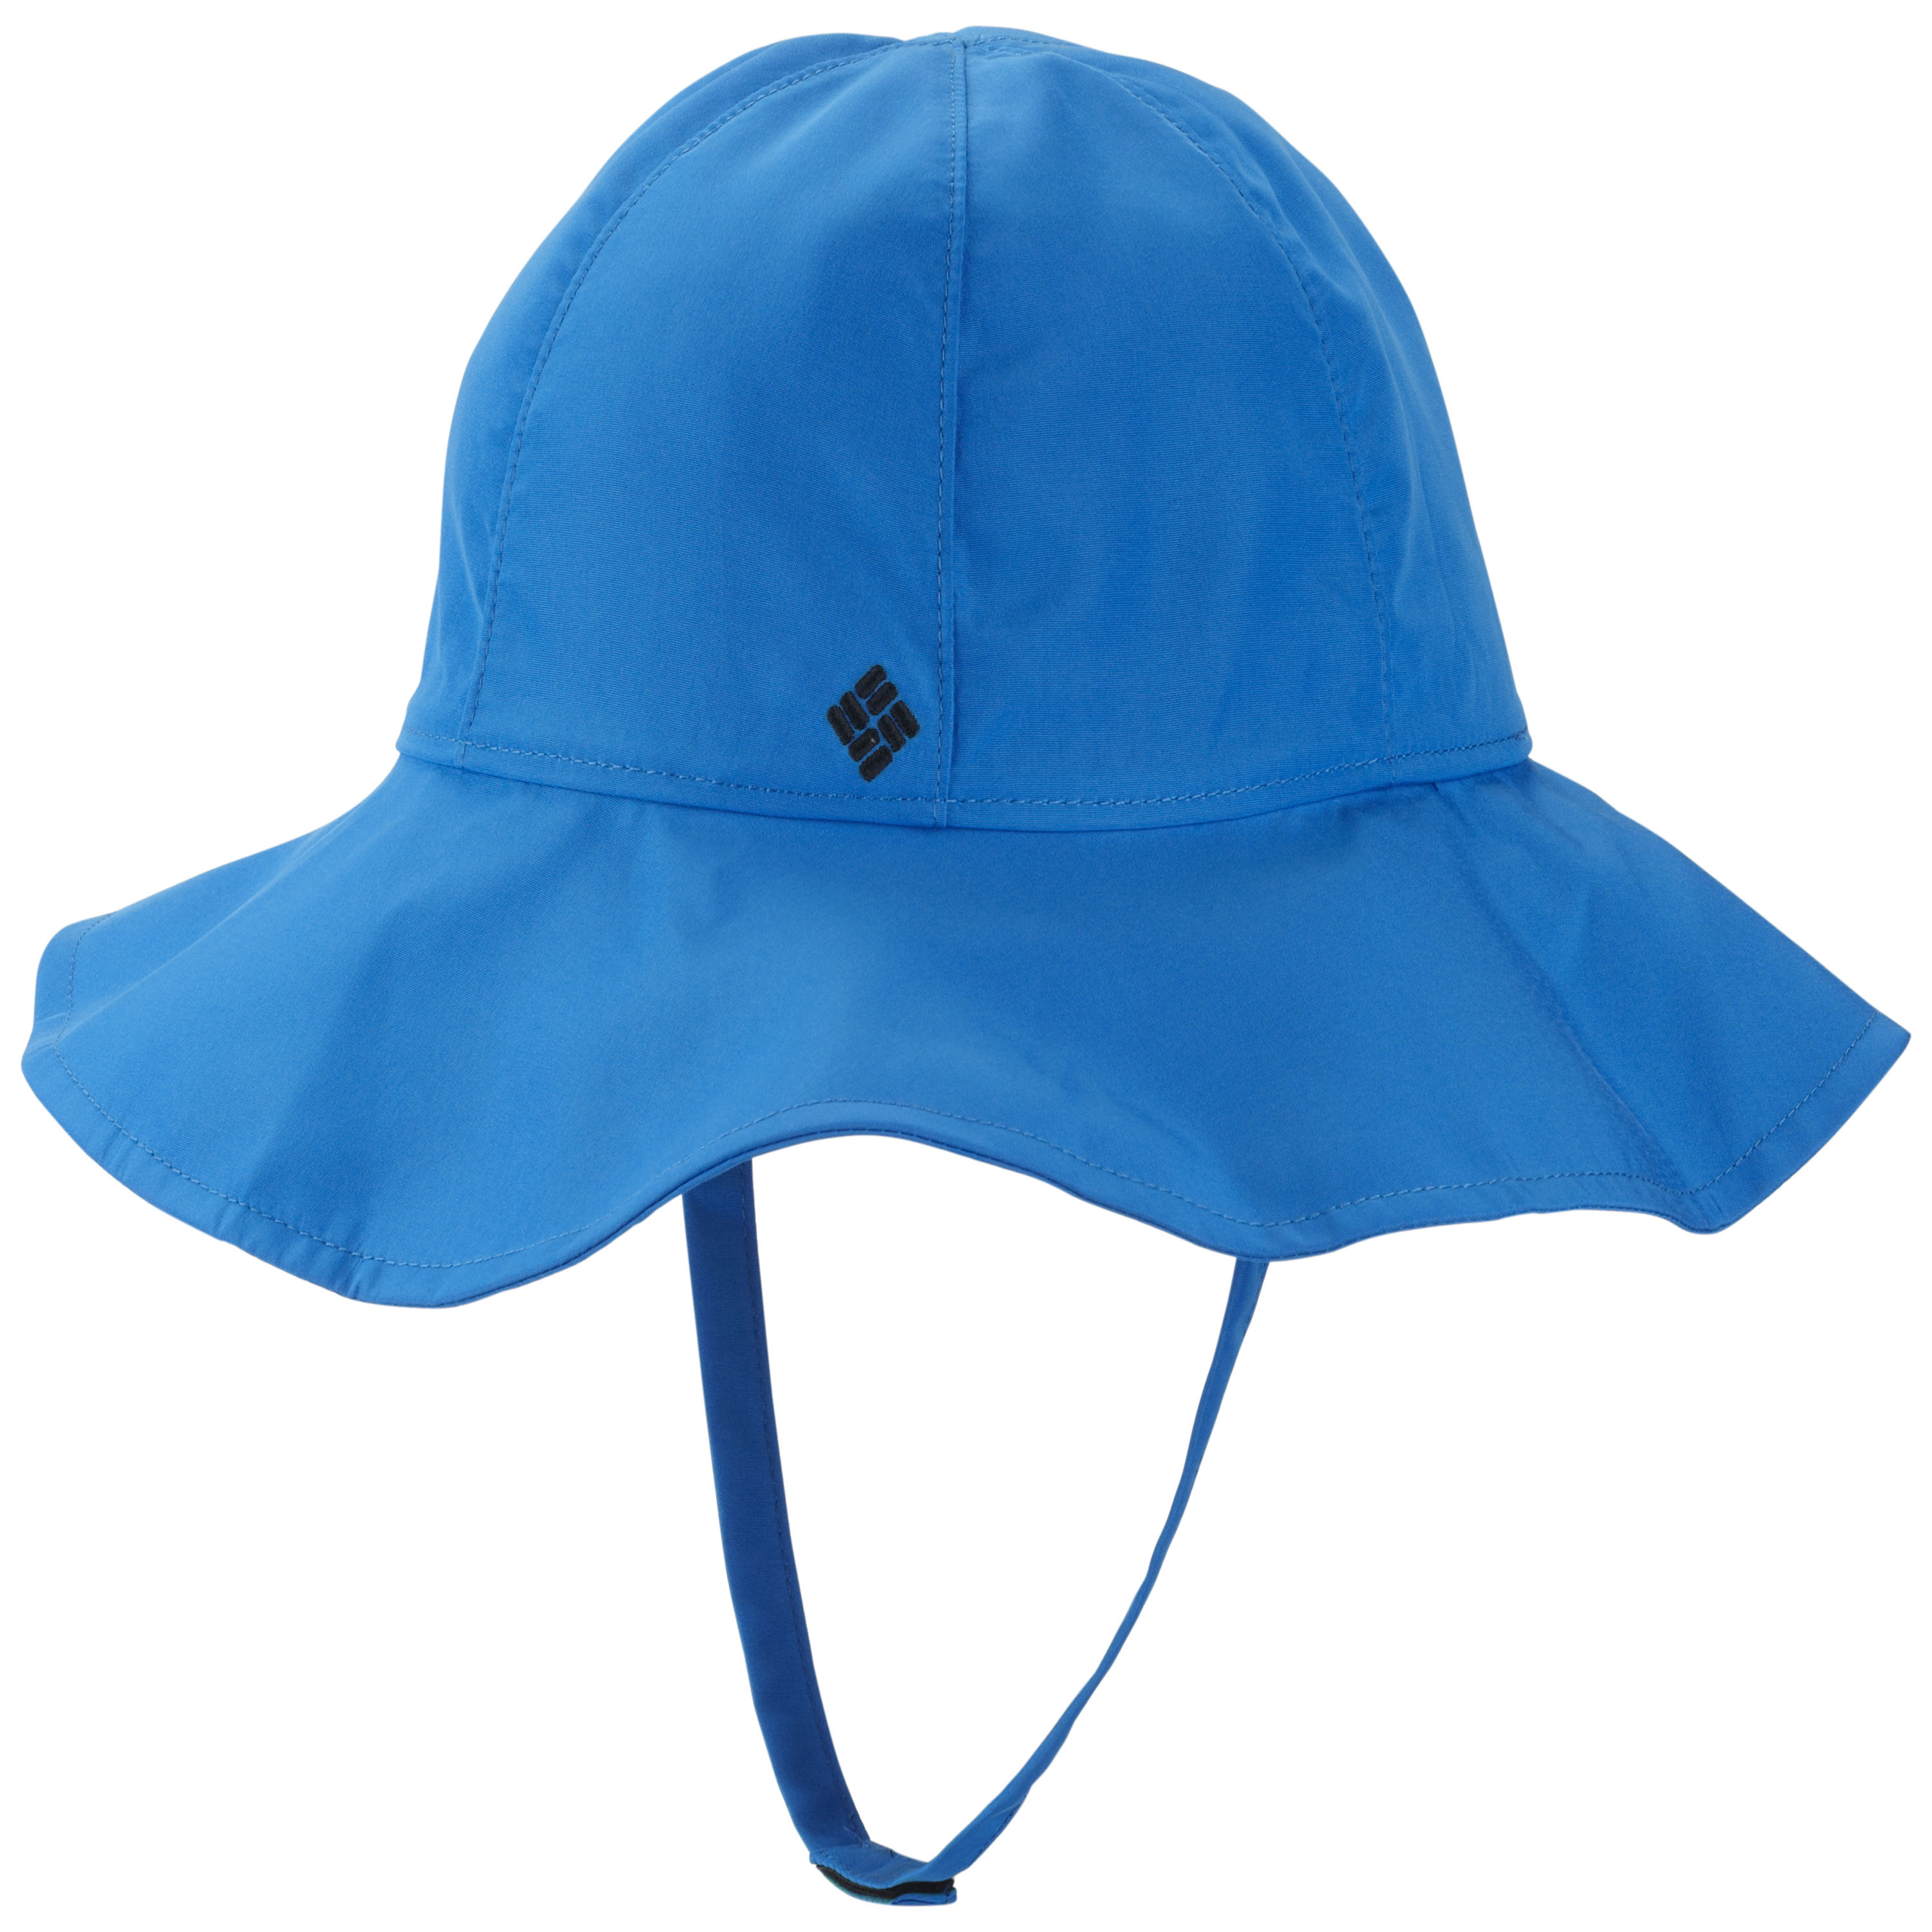 YOUTH PACKABLE BOONEY HAT